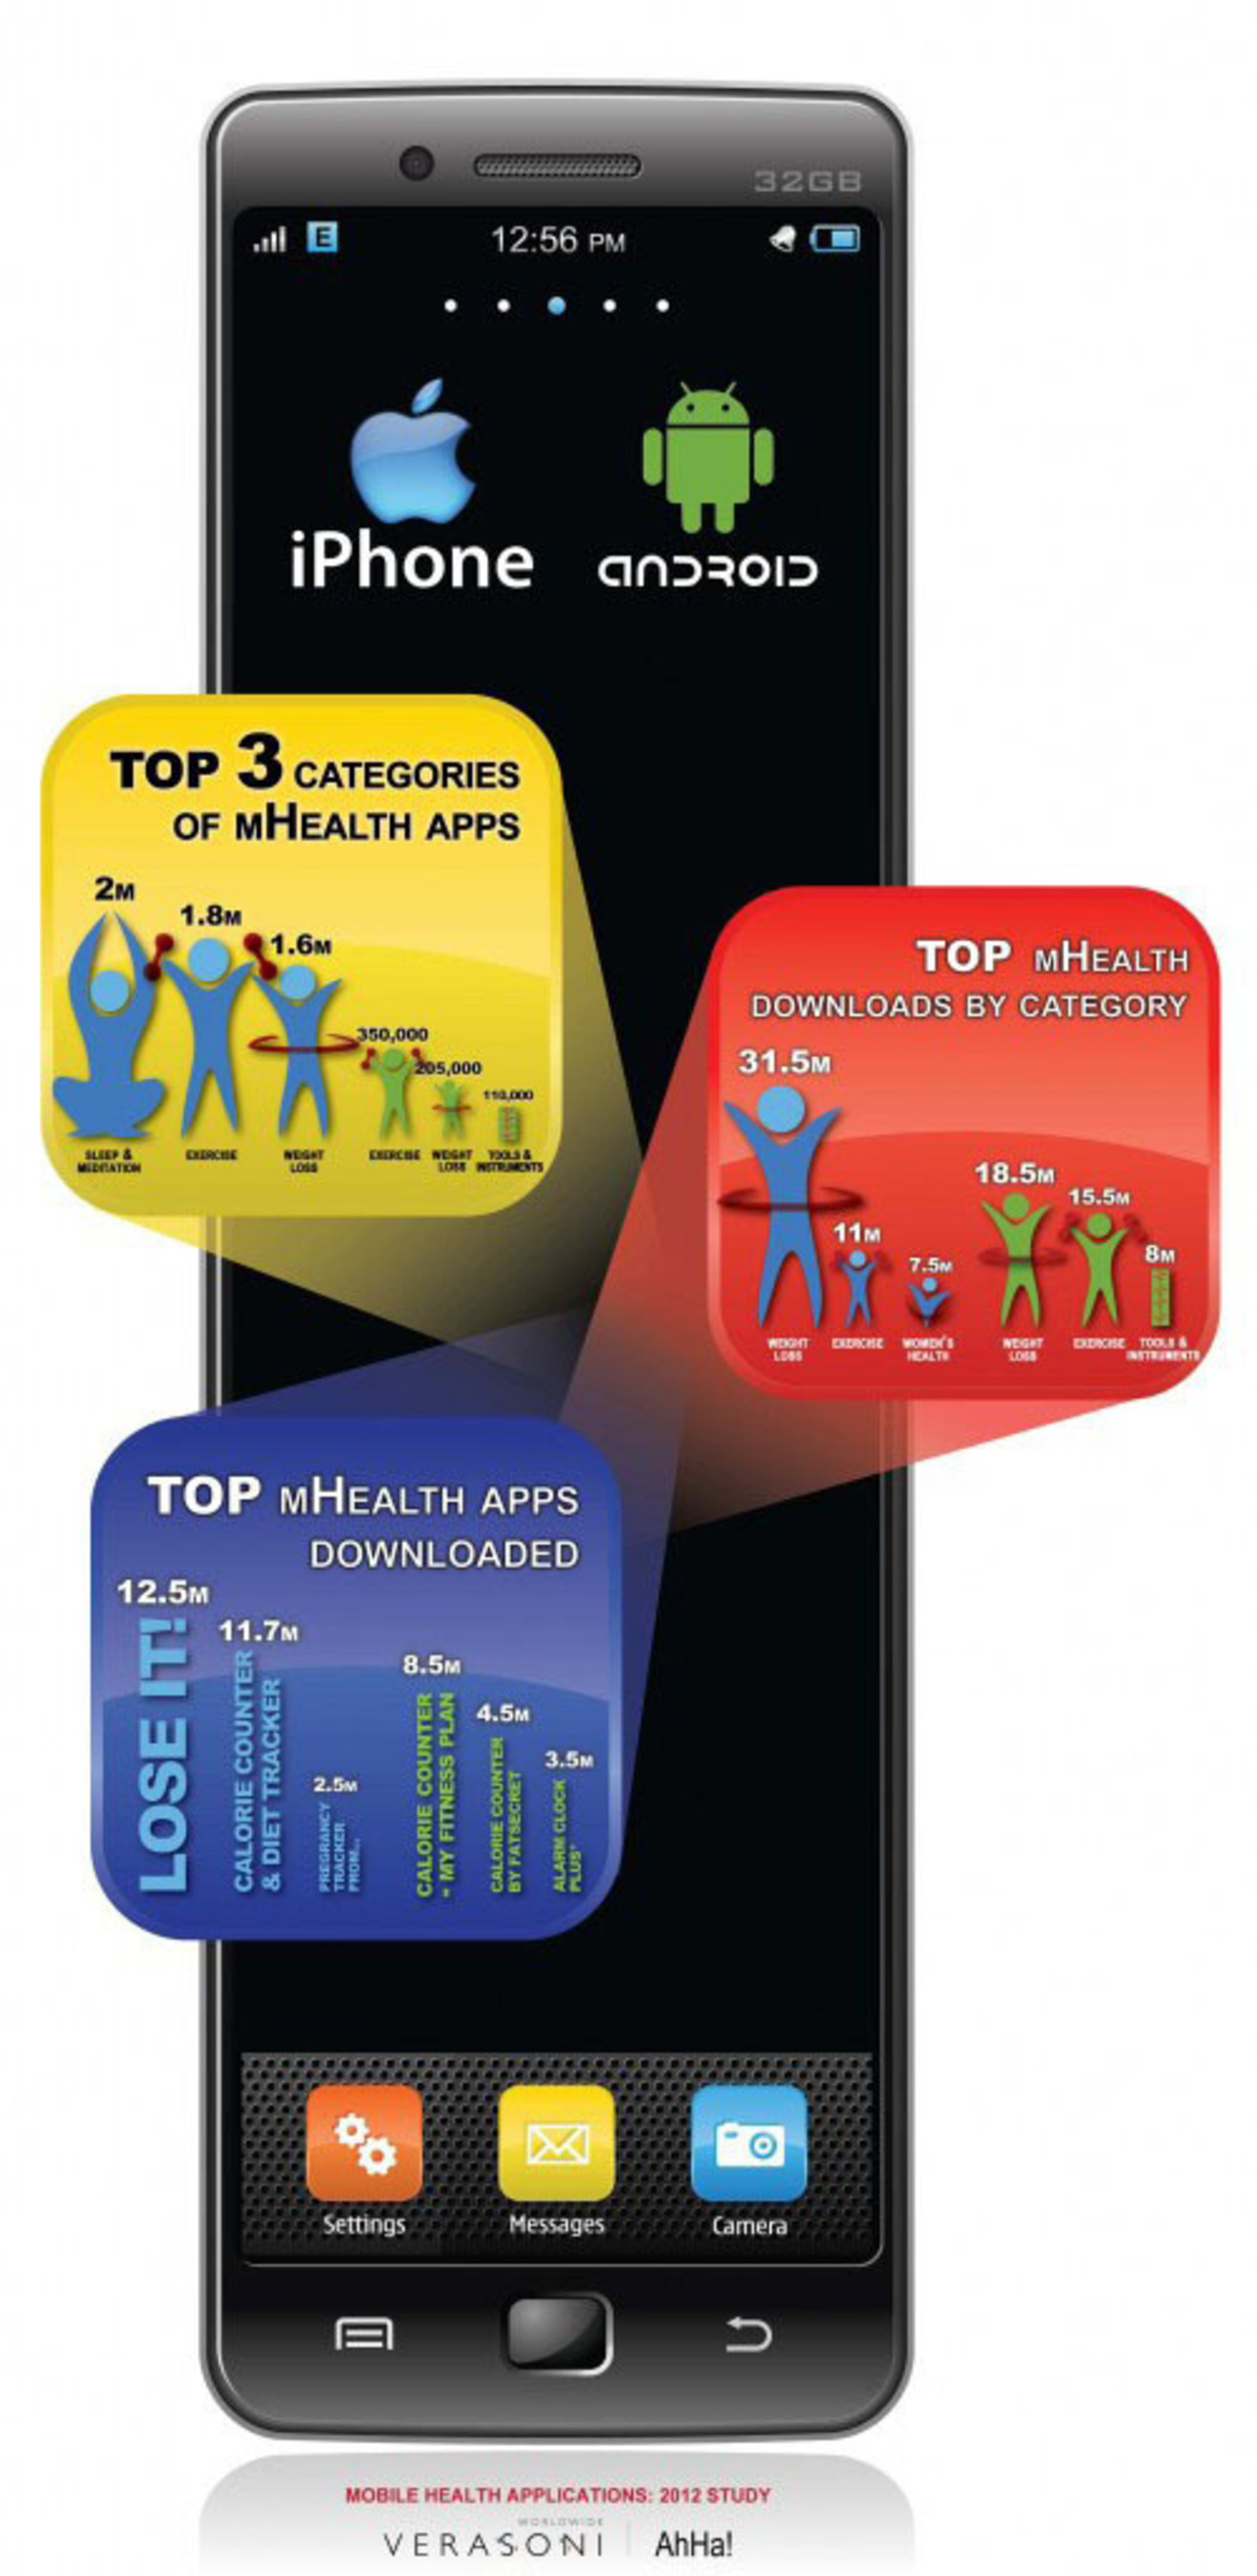 Mobile Health Applications: 2012 Study